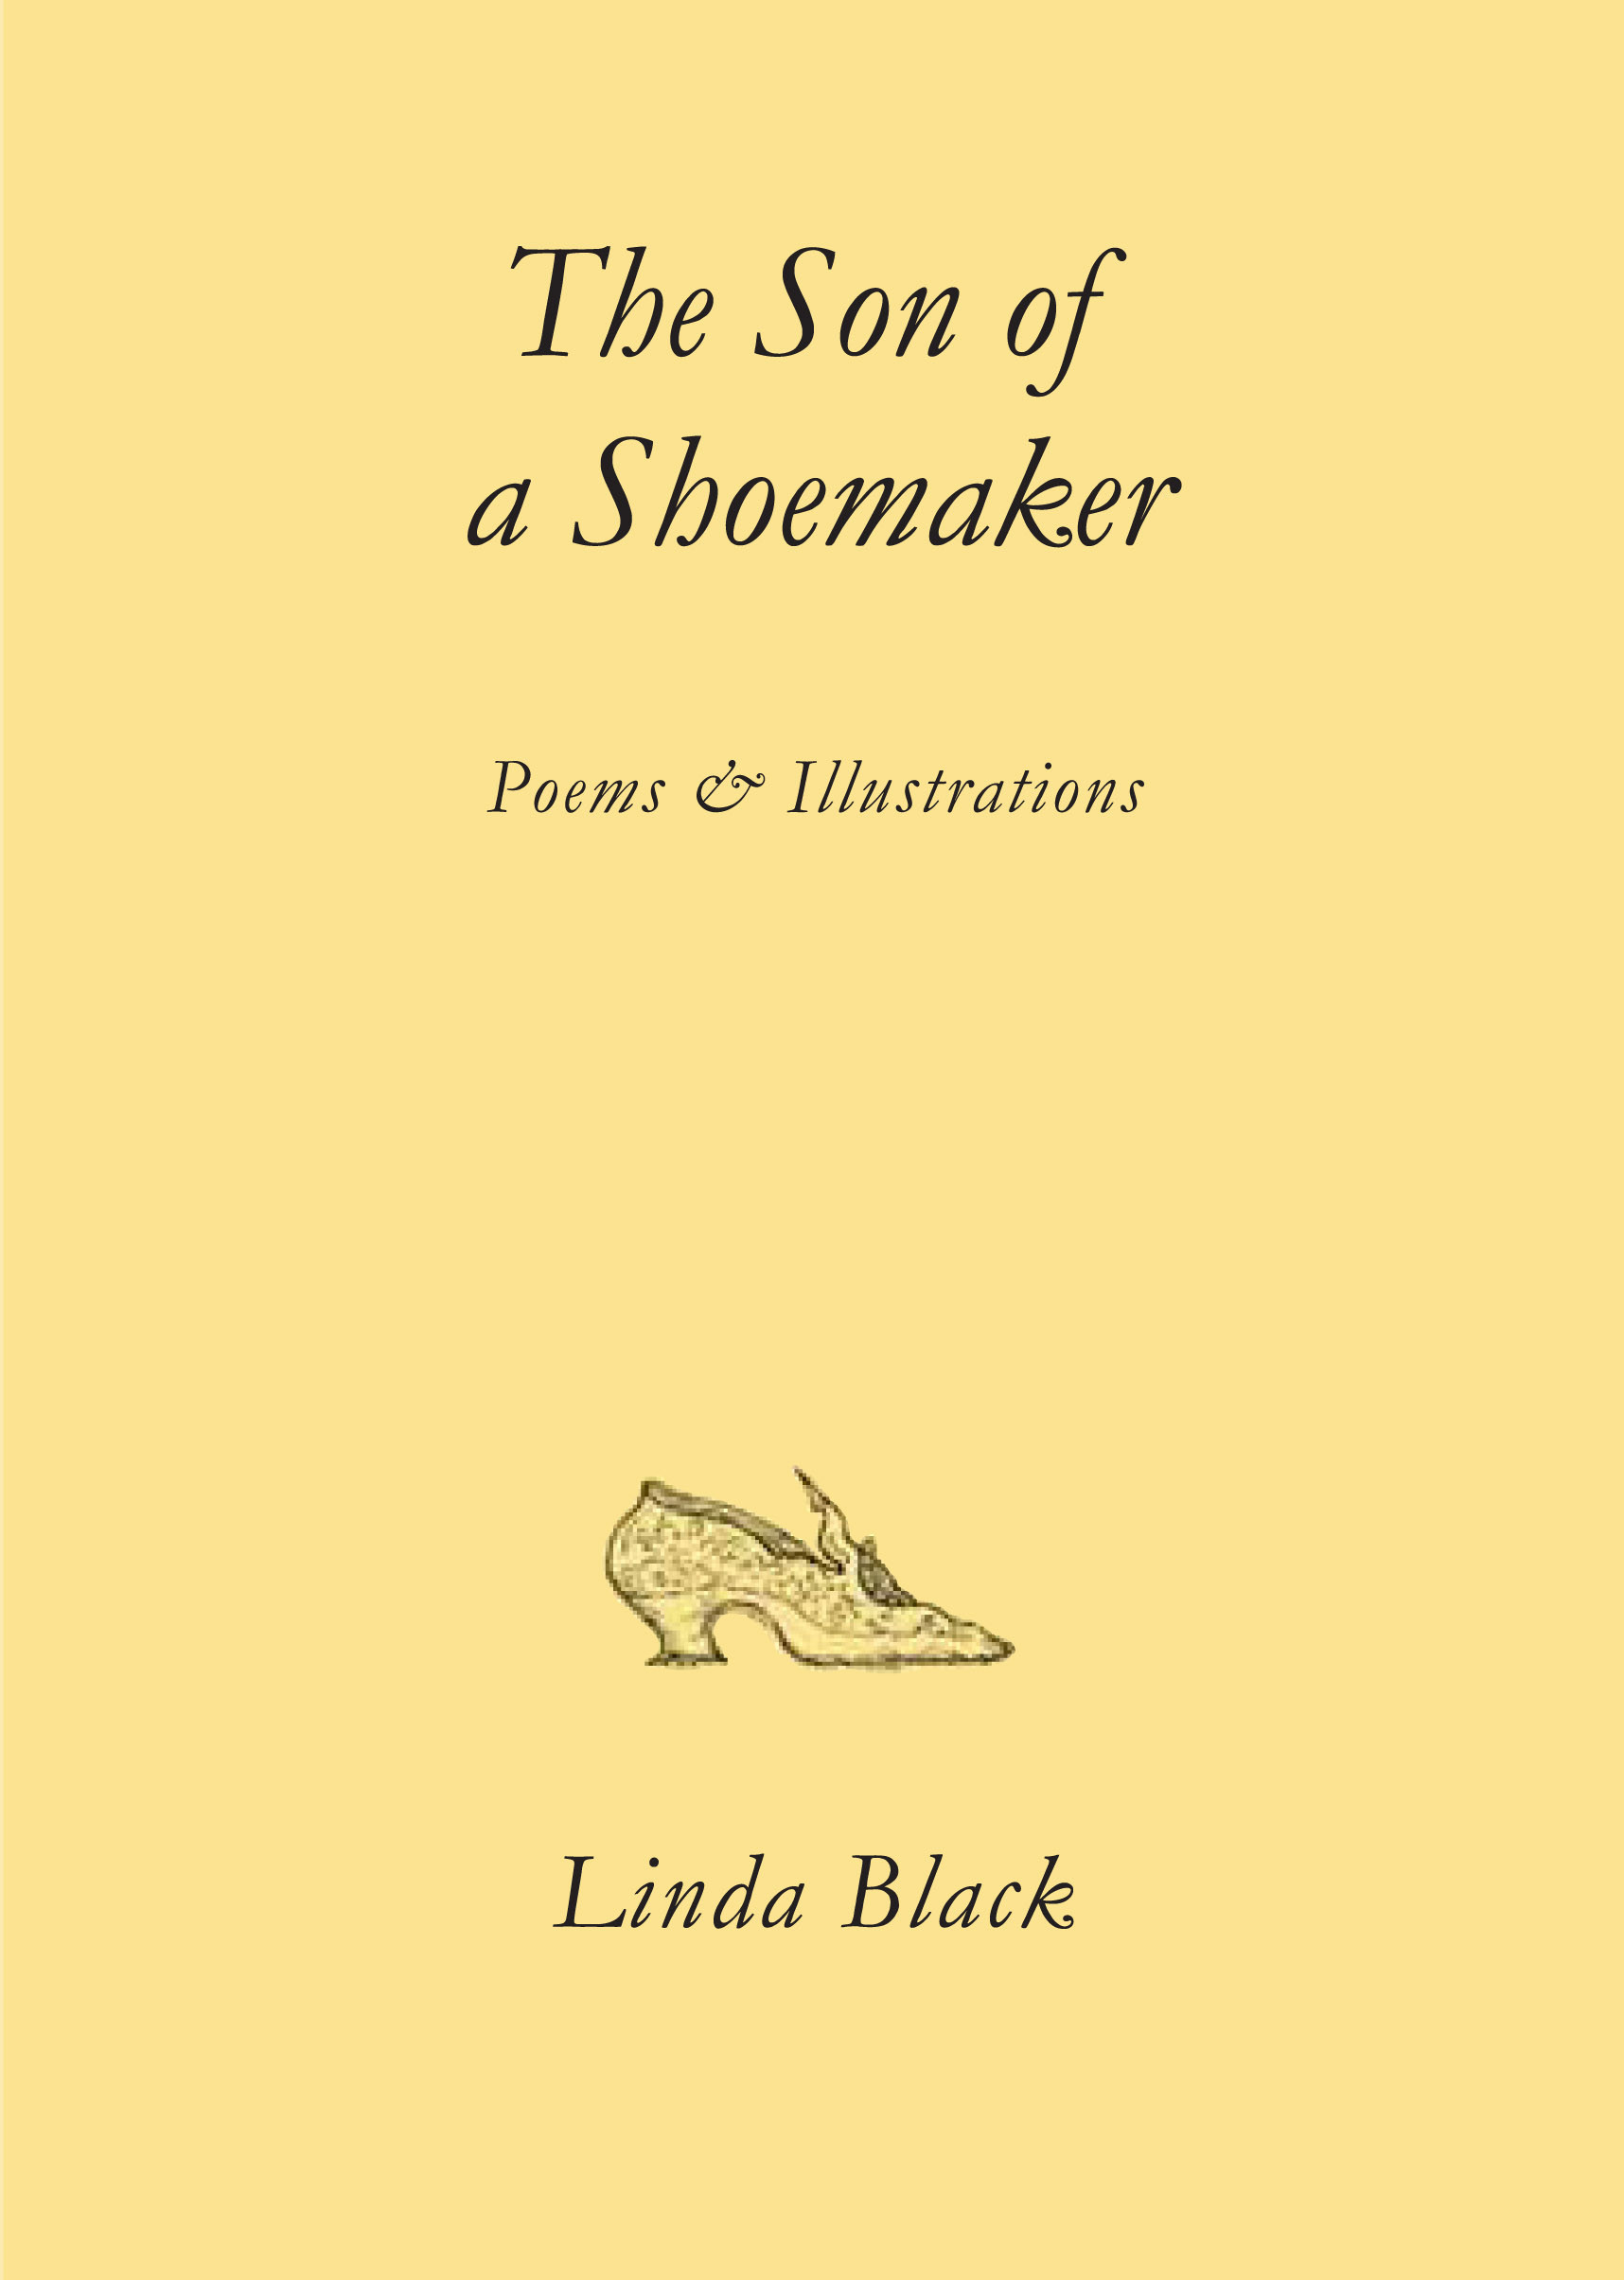 Son of a Shoemaker, The